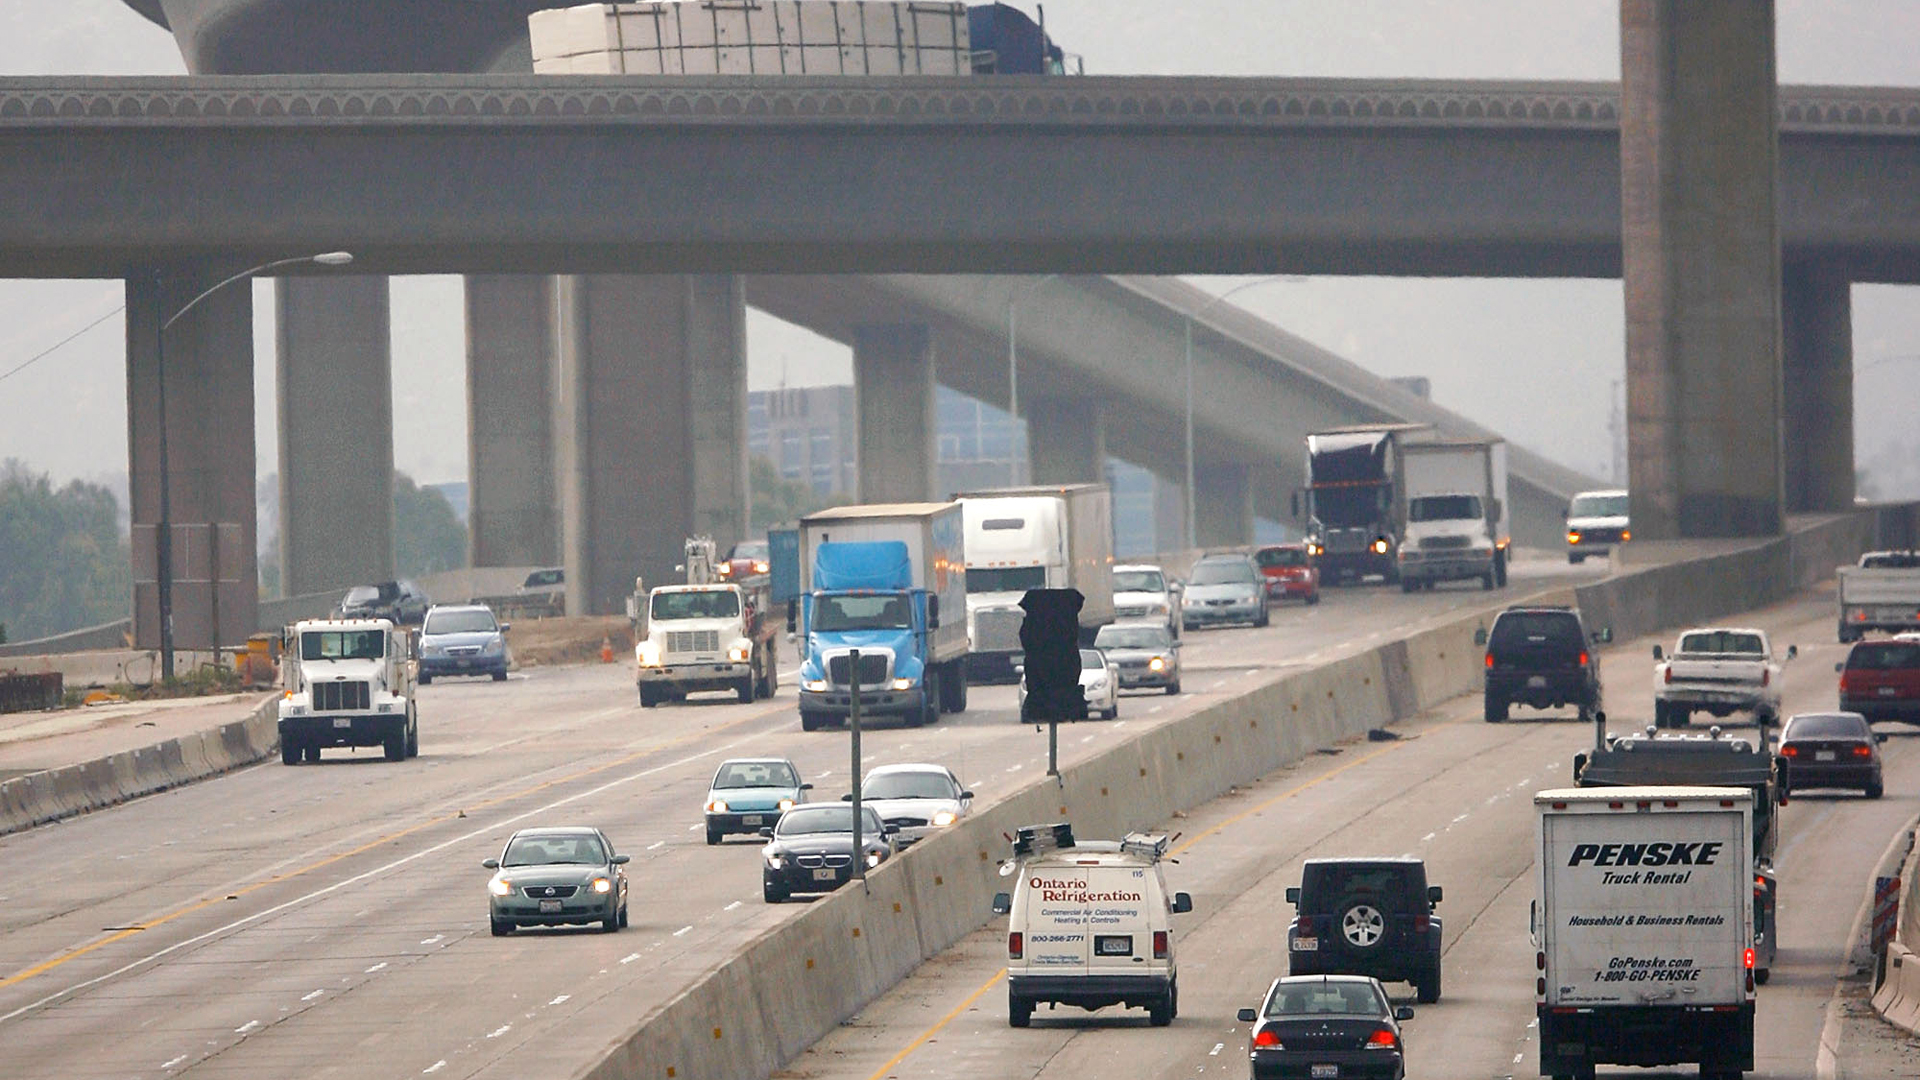 Traffic moves along the 60 Freeway in Riverside in this file photo. (Credit: David McNew/Getty Images)